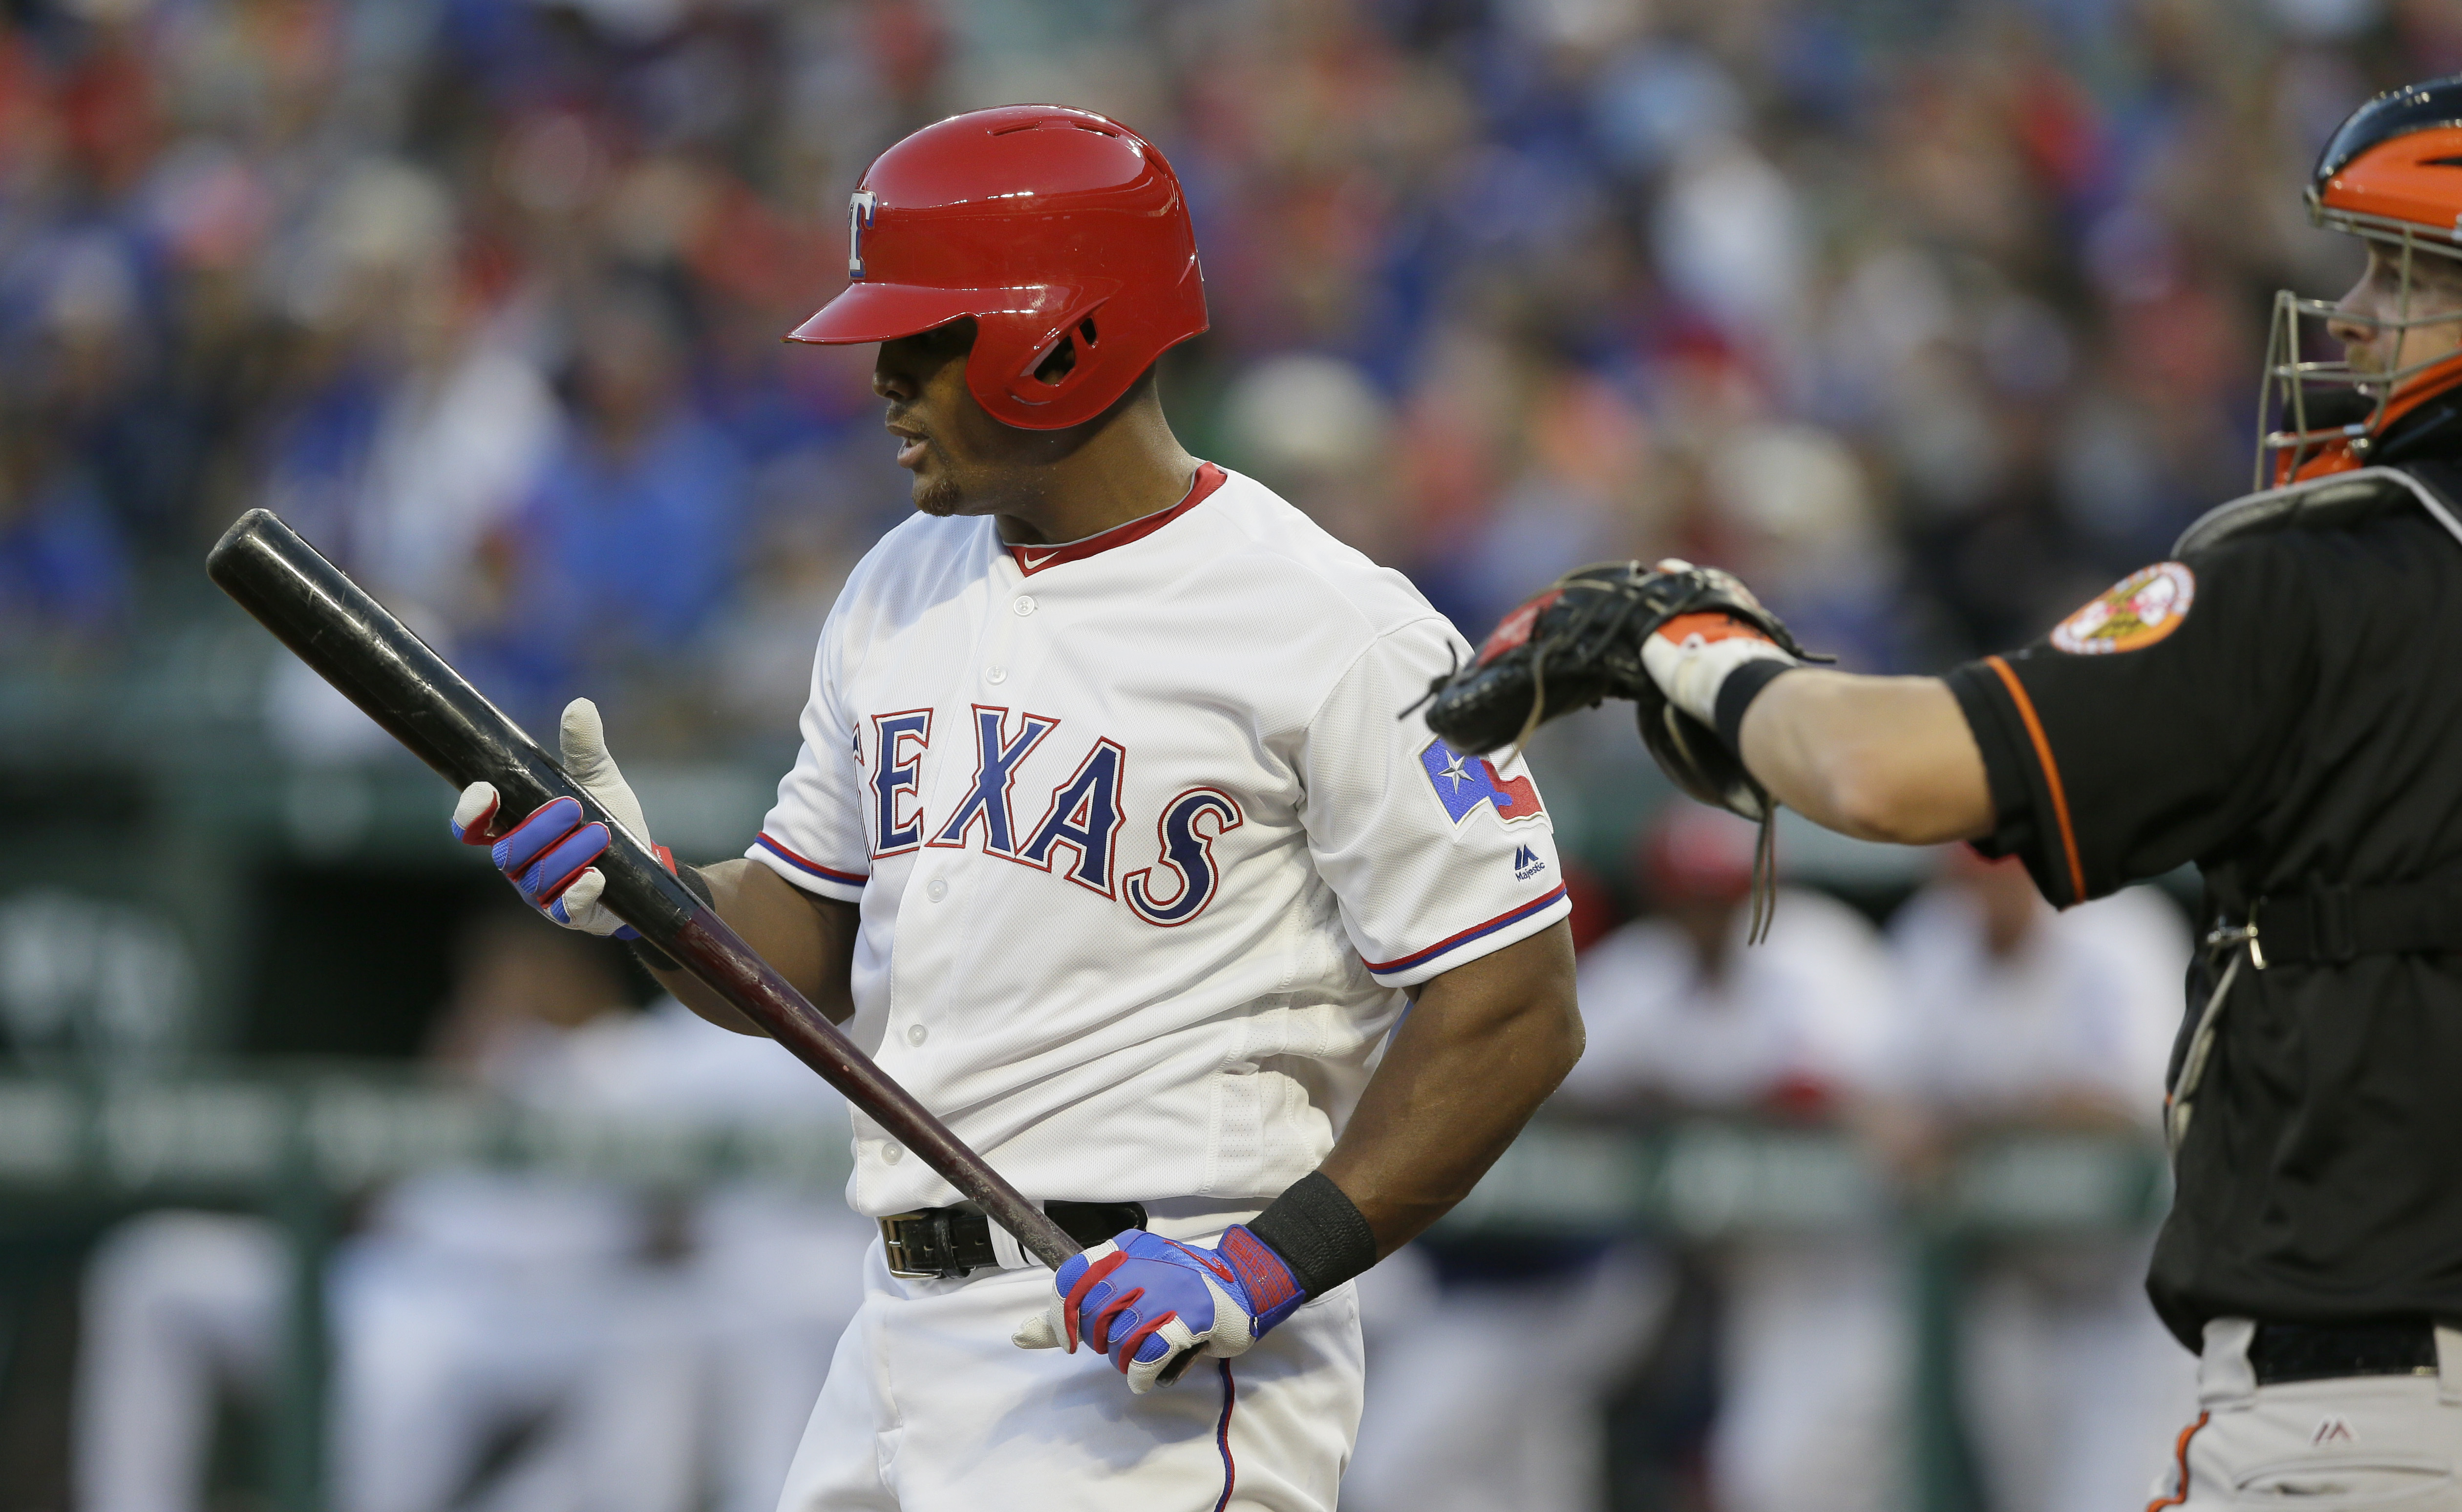 Texas Rangers' Adrian Beltre, left, prepares to bat during a baseball game against the Baltimore Orioles in Arlington, Texas, Friday, April 15, 2016. The Rangers and Beltre have reached an agreement that adds $36 million and two years for the All-Star thi